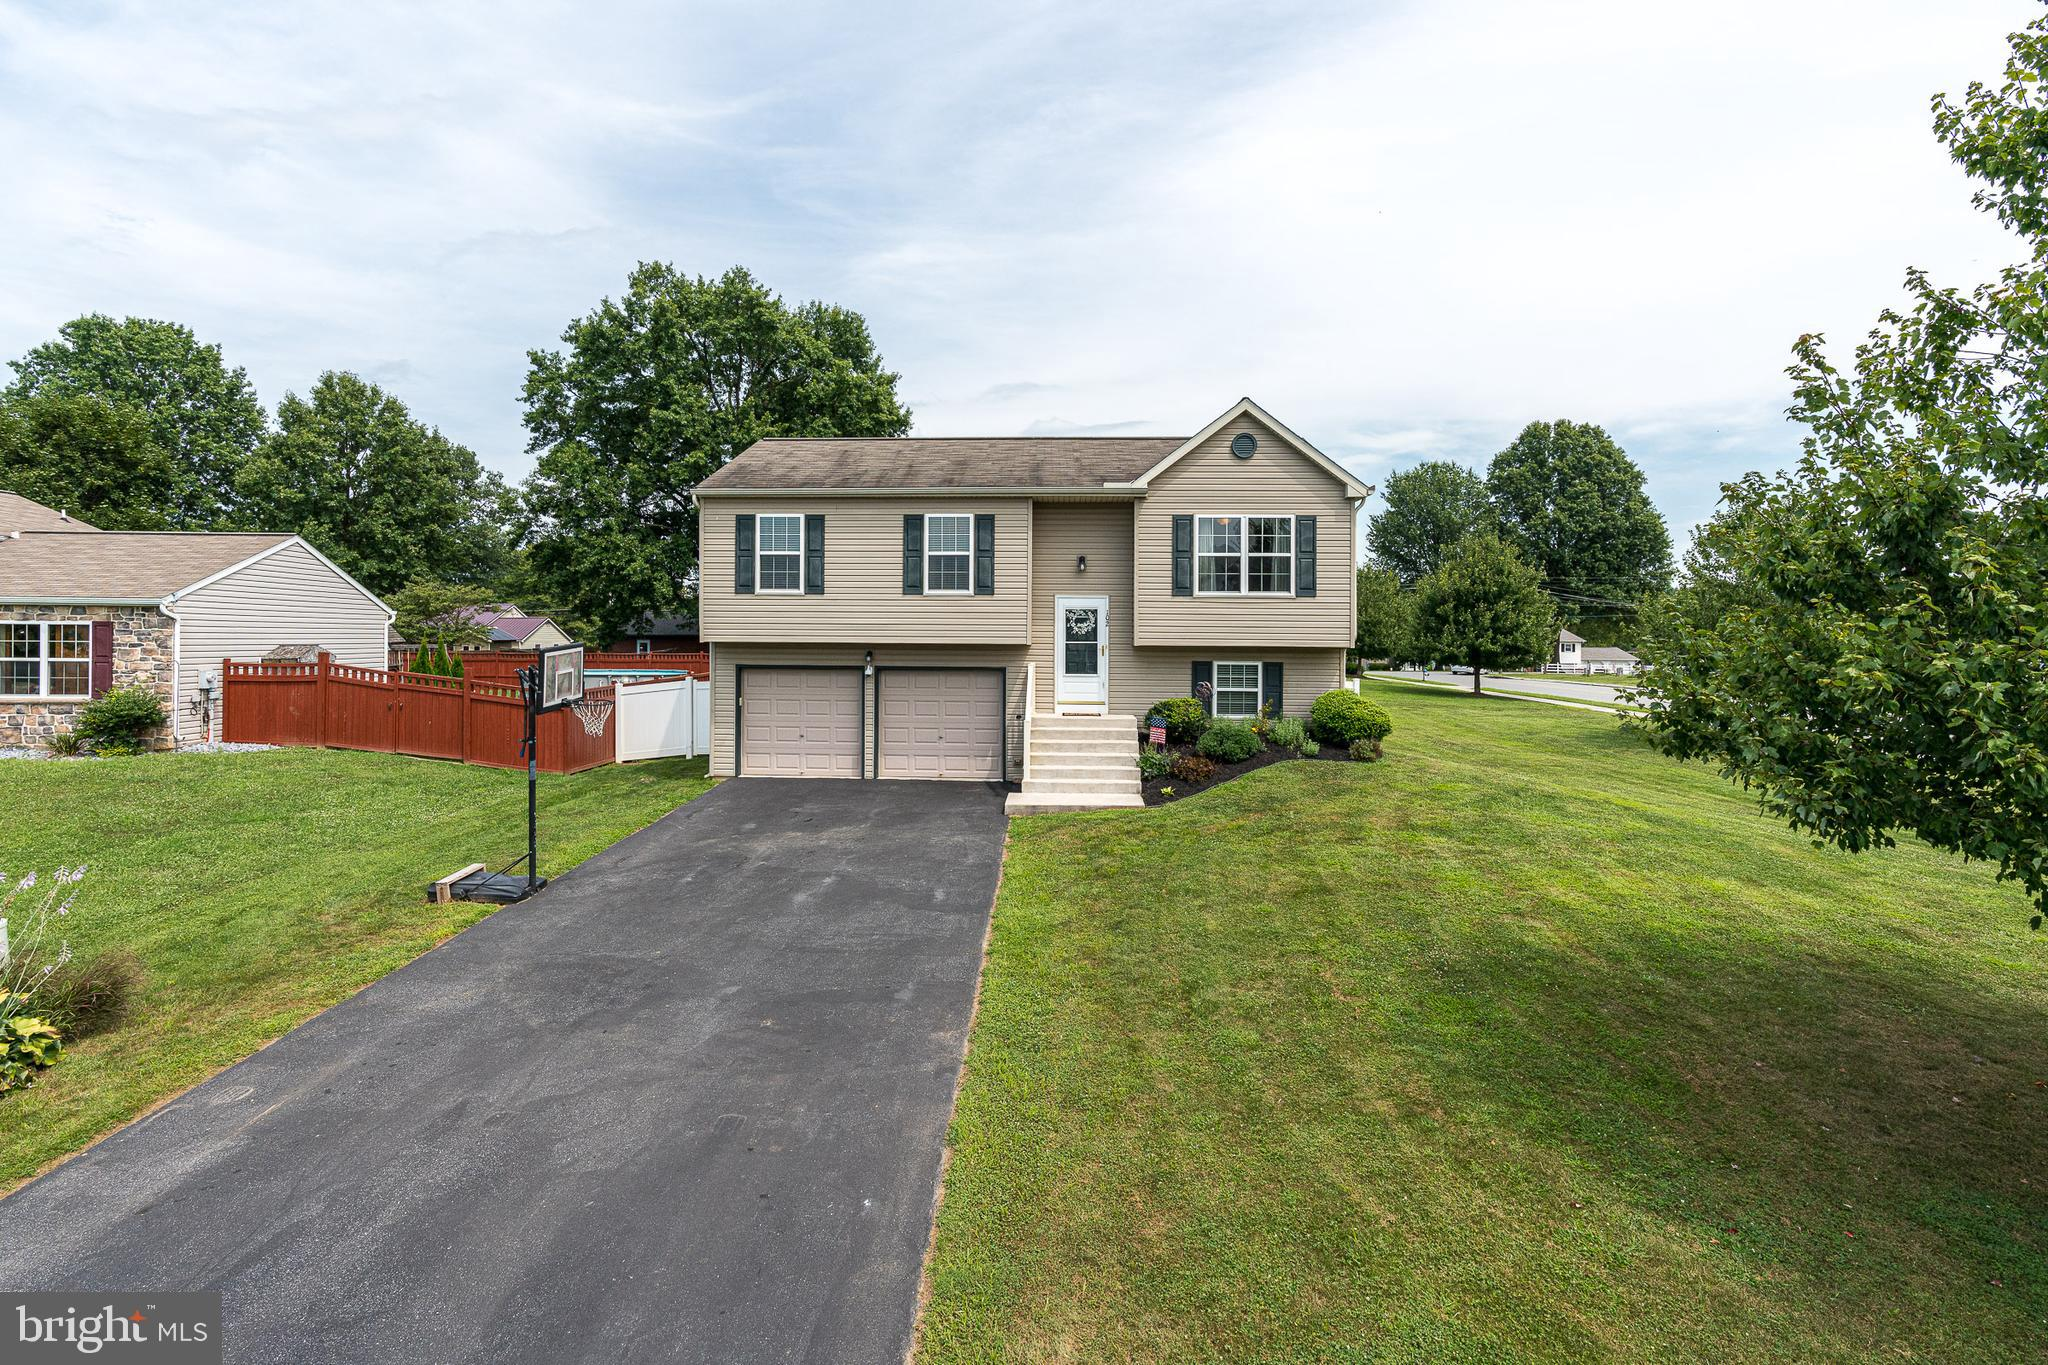 102 OVERLOOK DRIVE, BAINBRIDGE, PA 17502